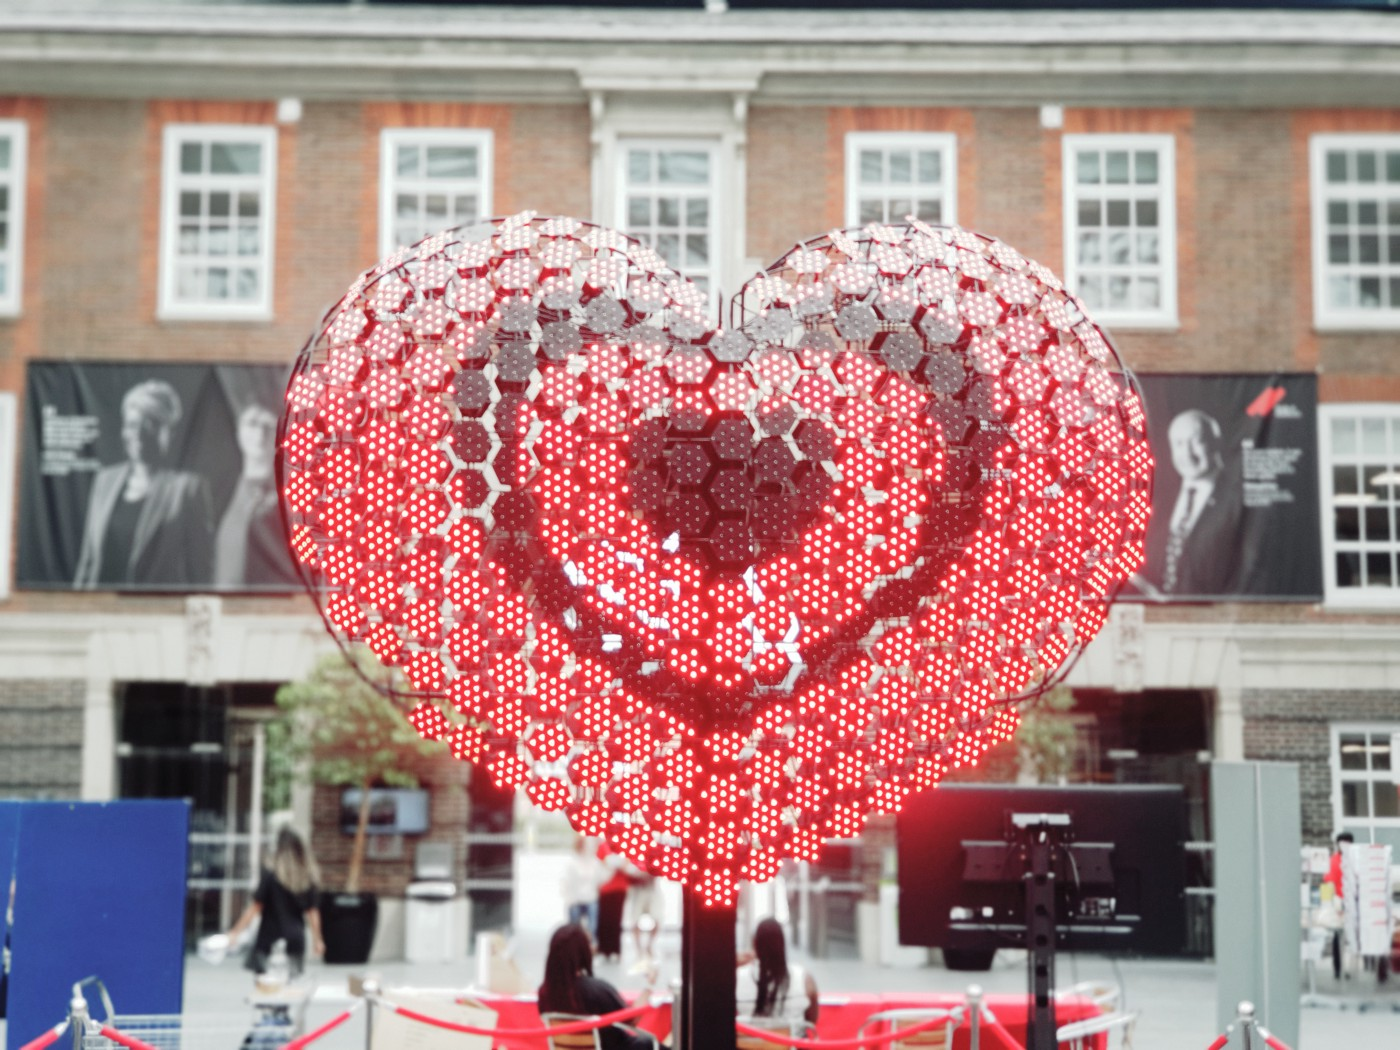 A large set of led lights shaped into a red heart in a university quad